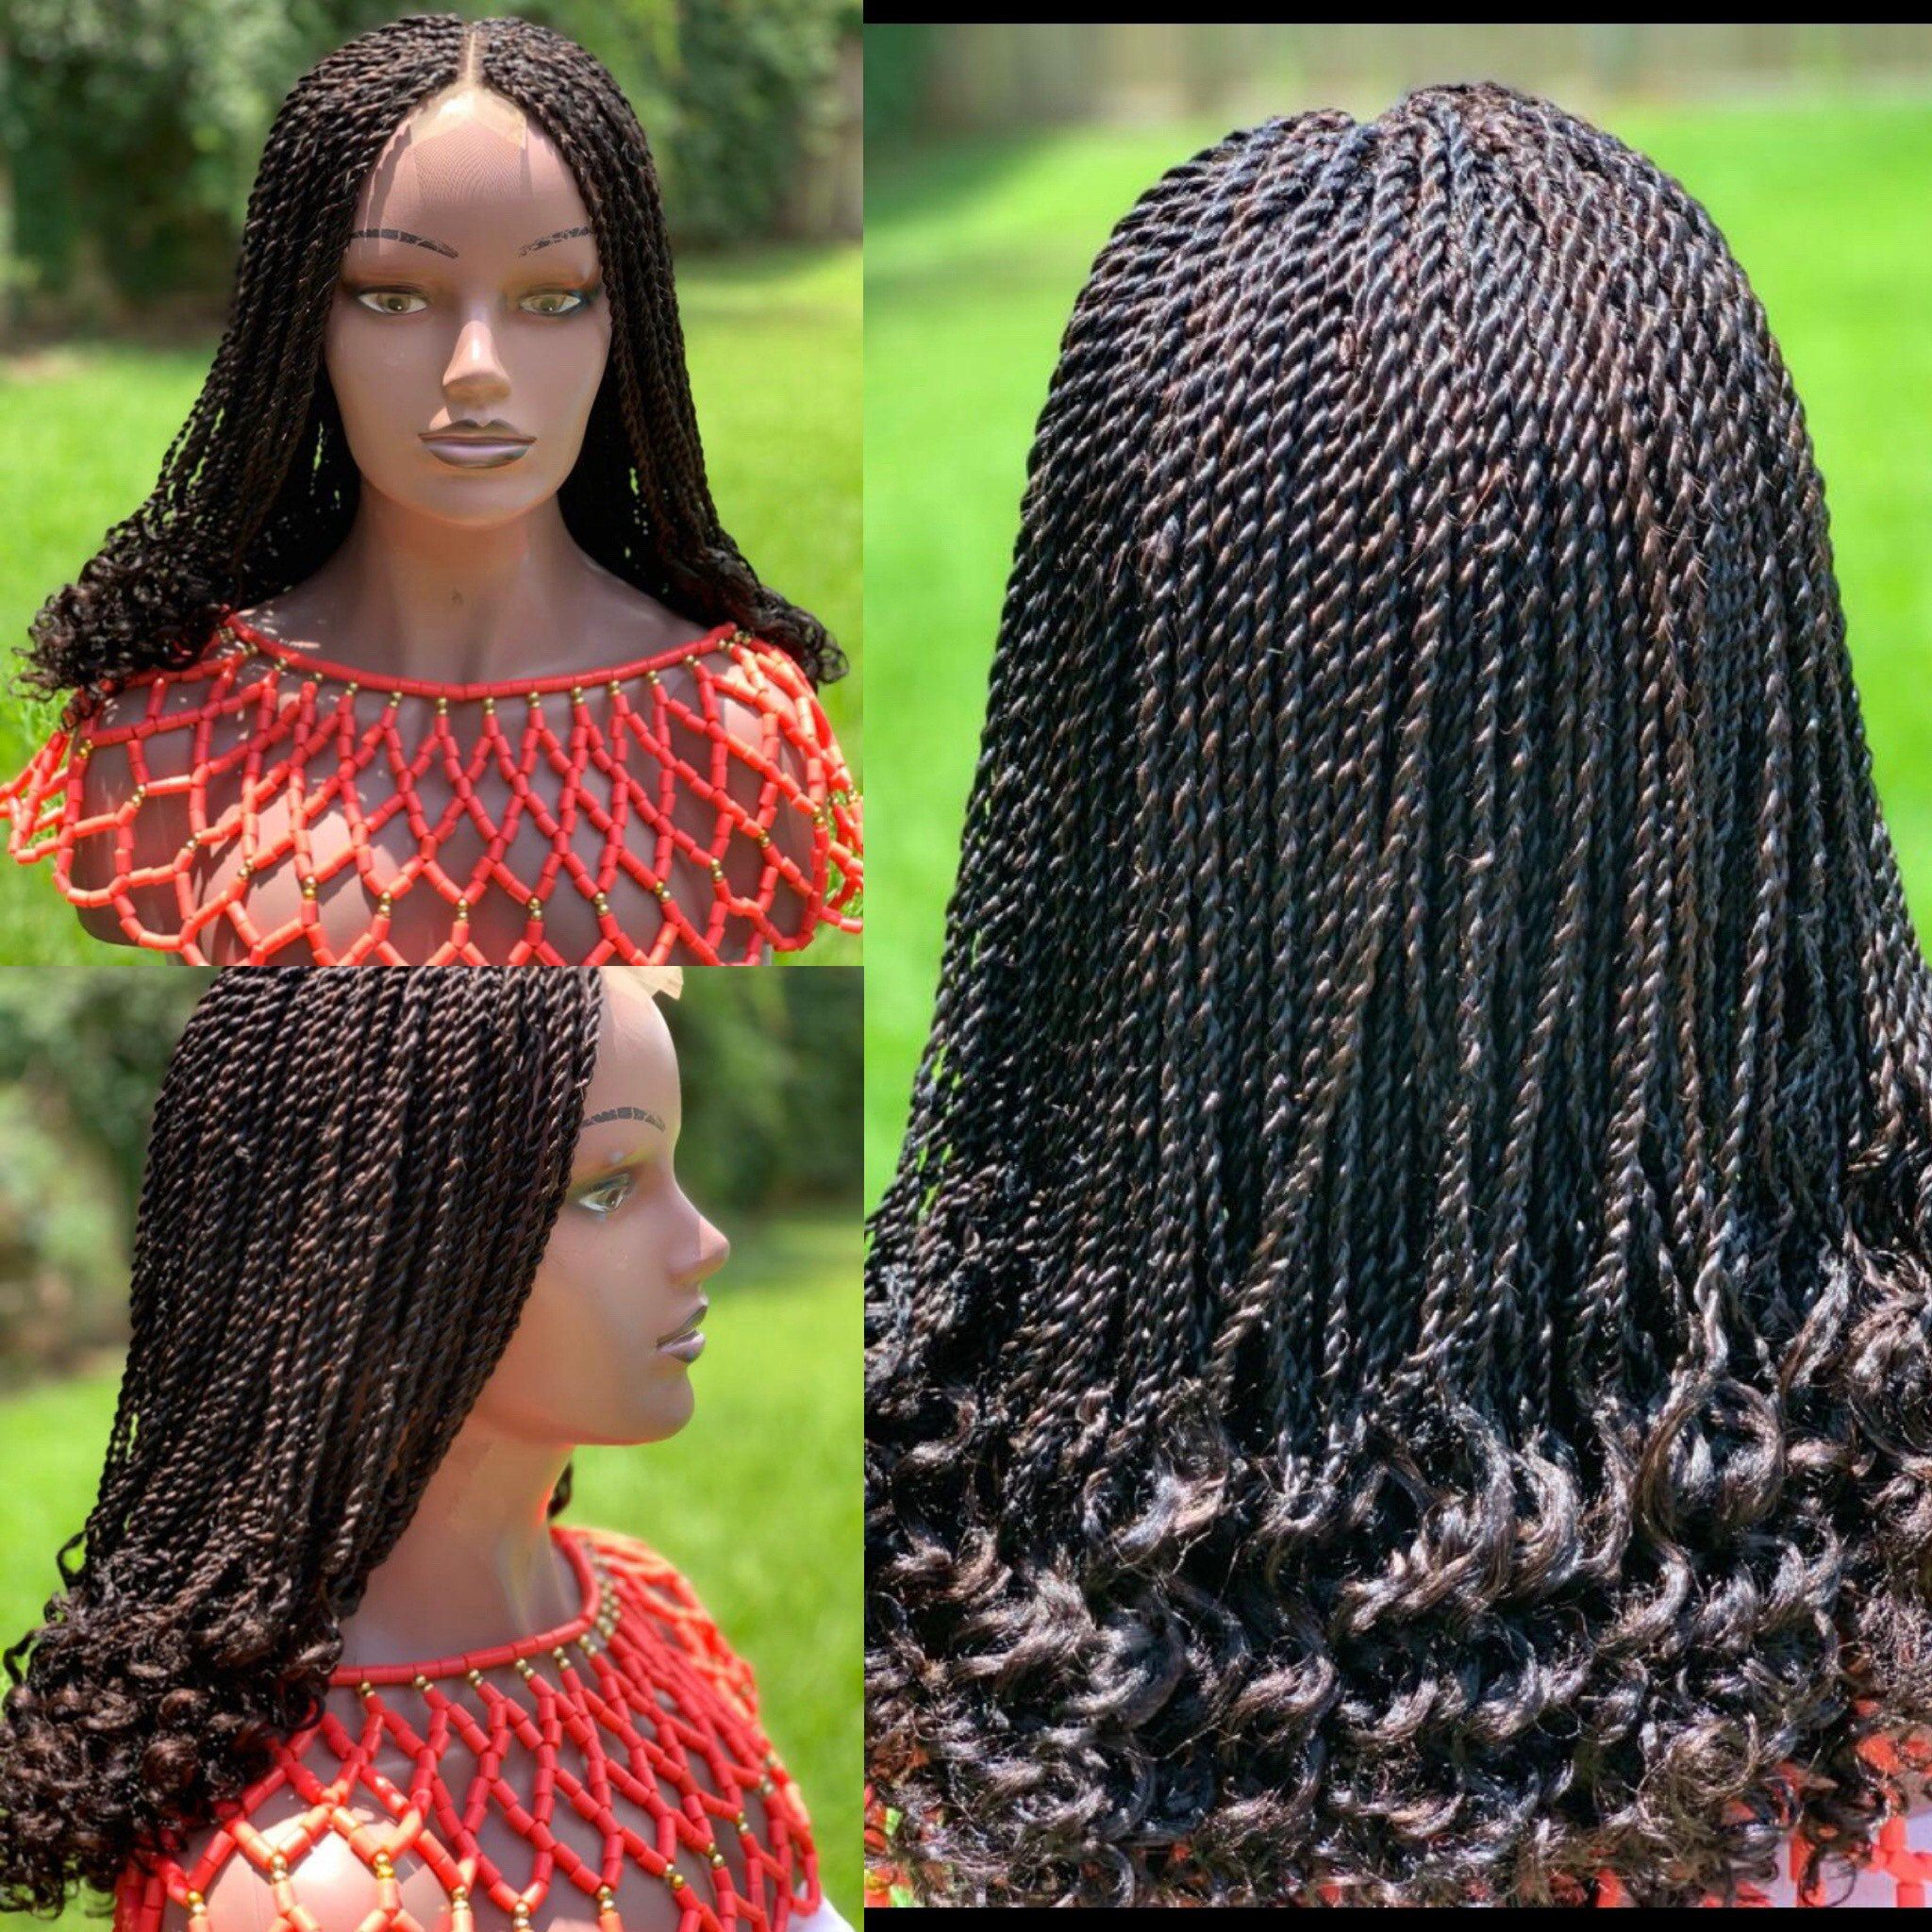 Braided wig with curly tips the length is 18inches long